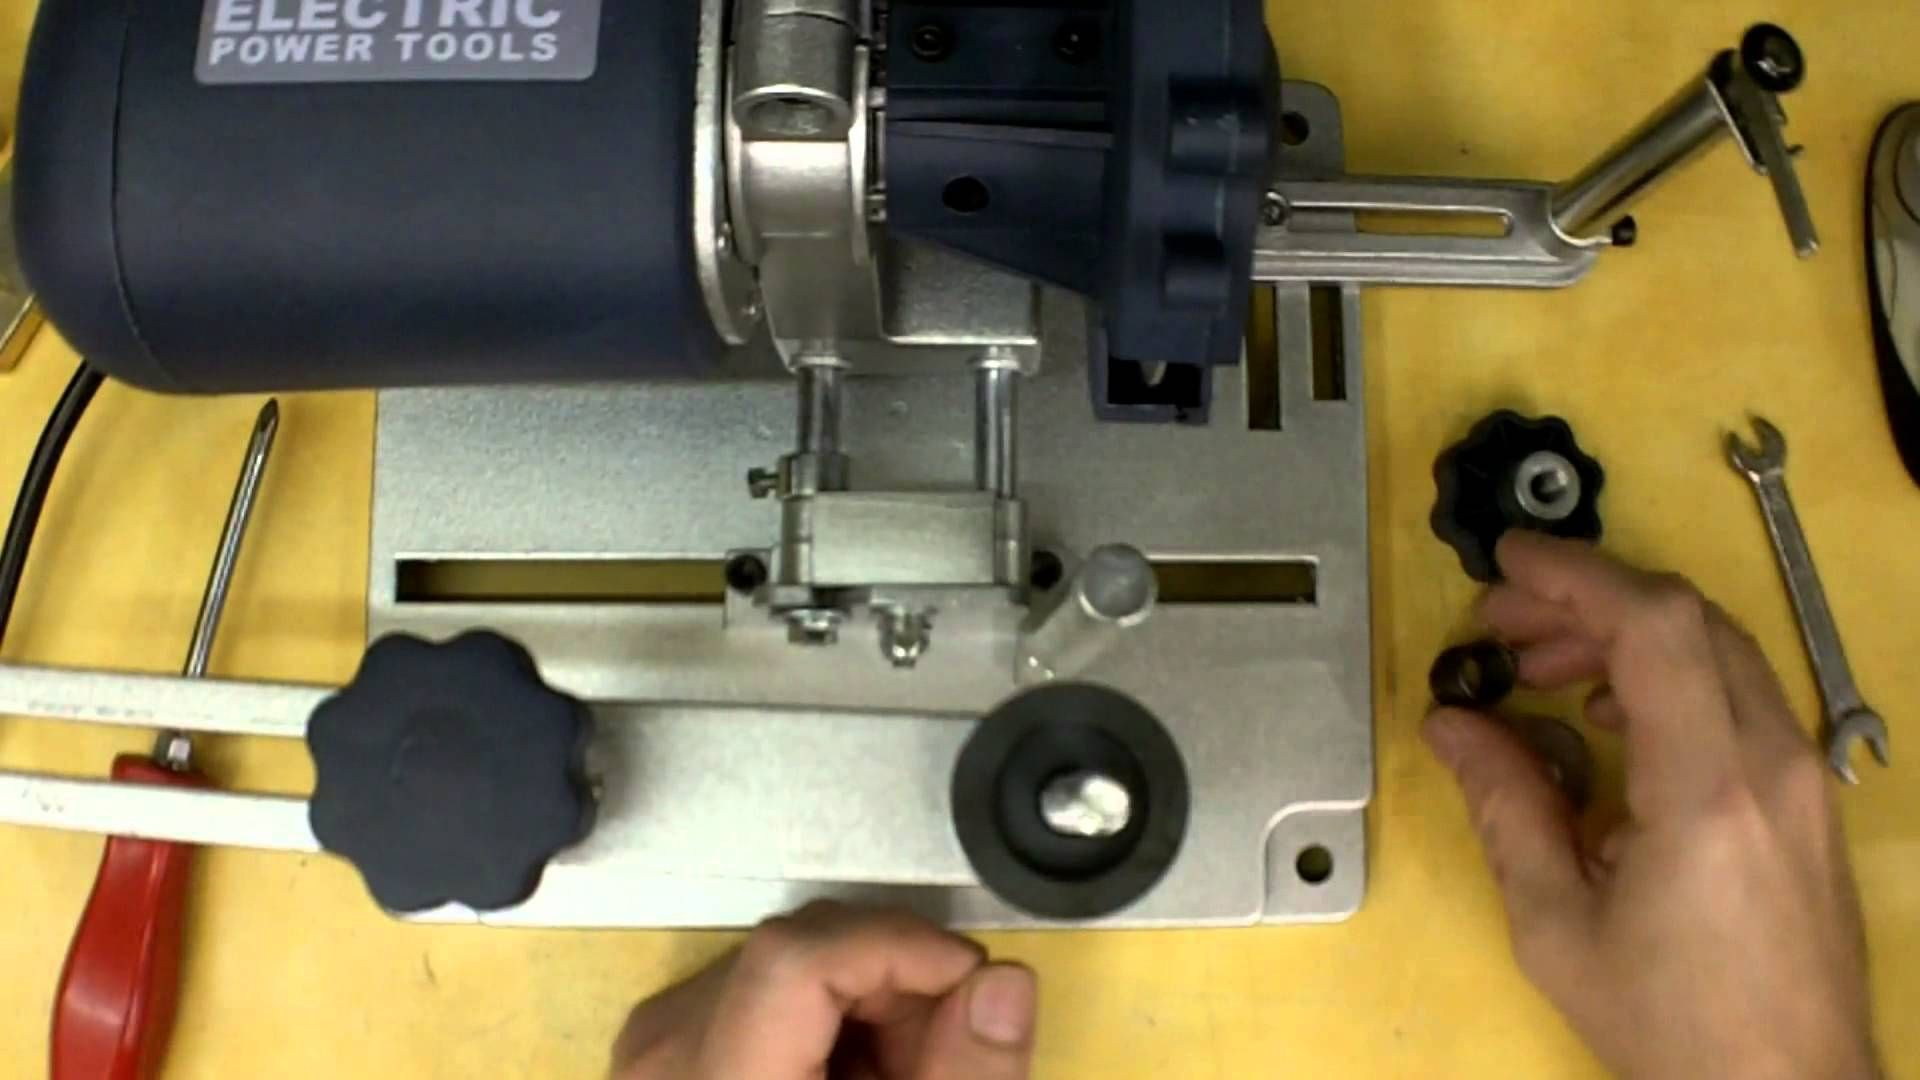 Harbor Freight Circular Saw Blade Sharpener Review and Modifications